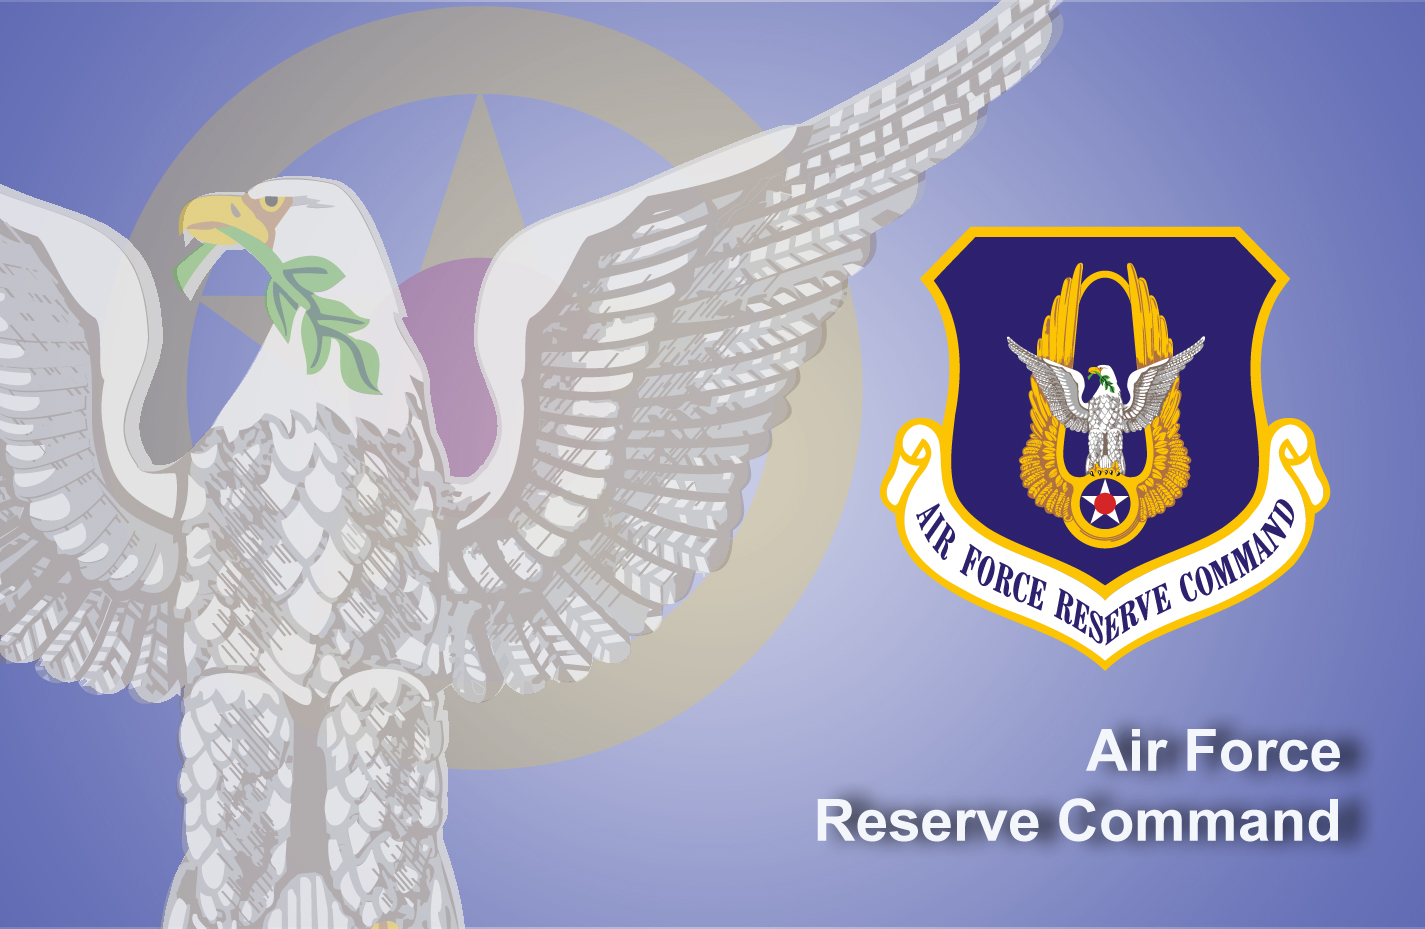 Air Force Reserve Command > U.S. Air Force > Fact Sheet ...